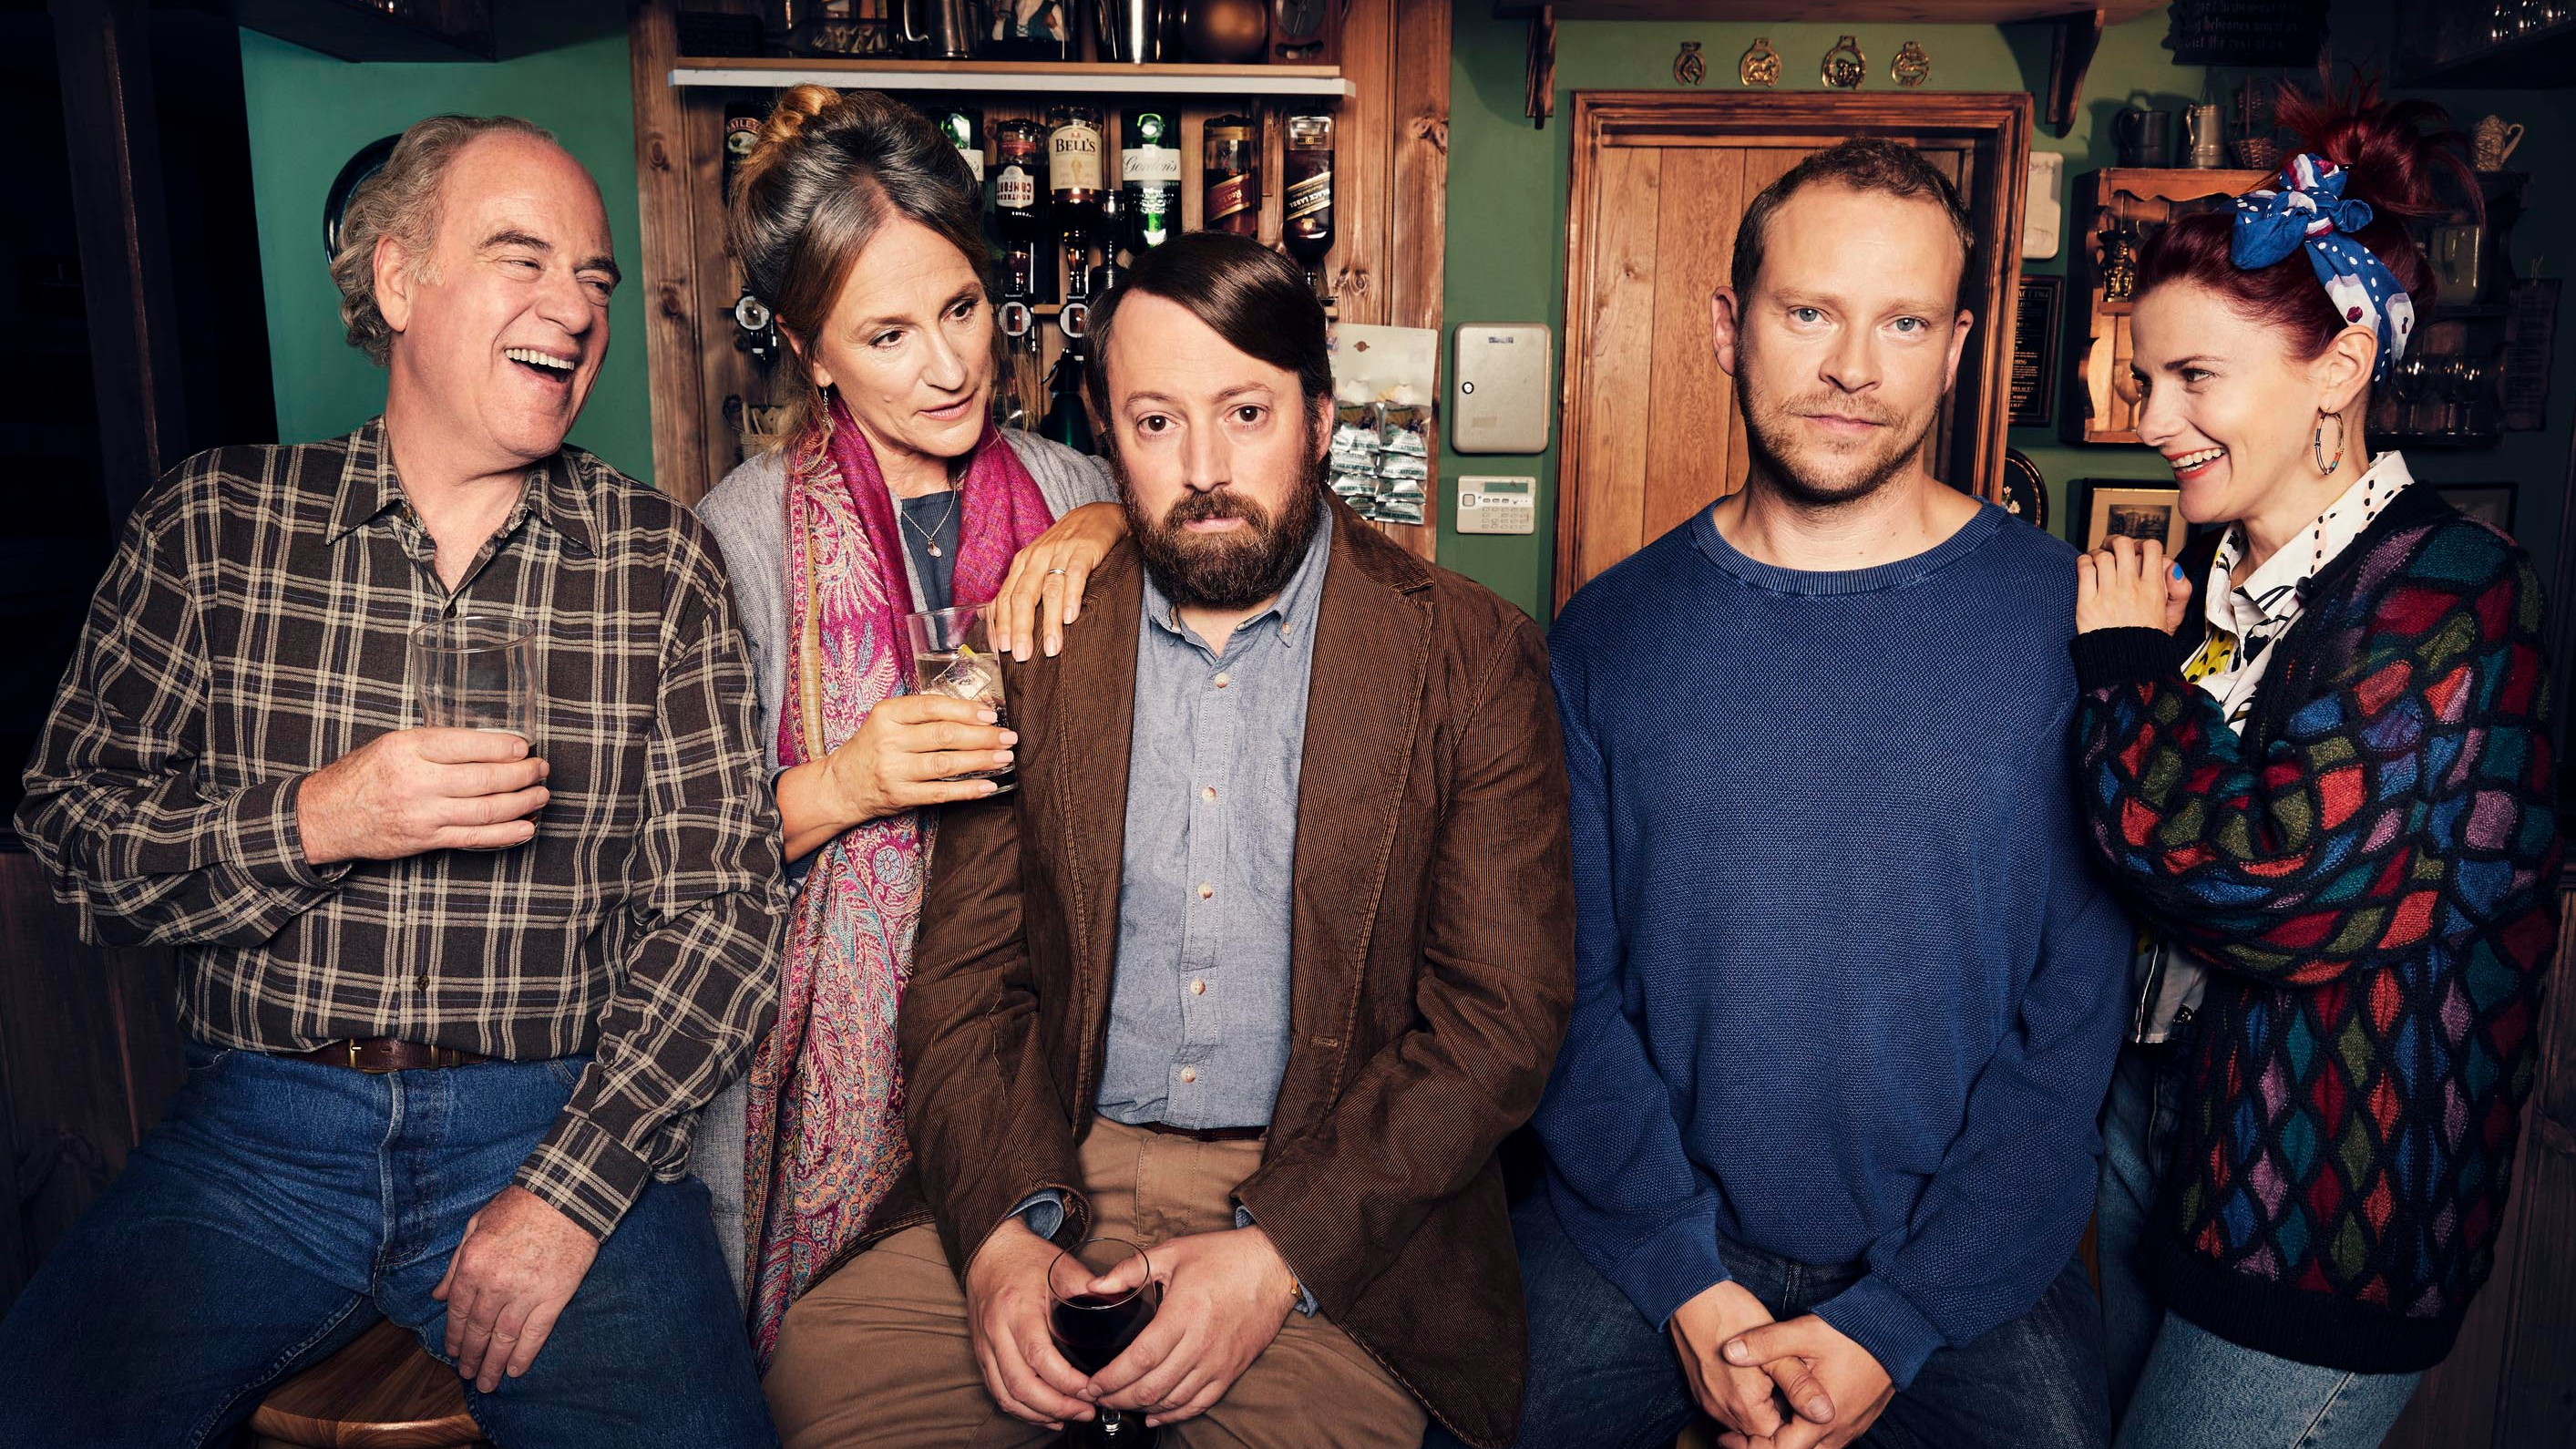 David Mitchell And Robert Webb Are Coming Back And We Hope It's As Good As Peep Show